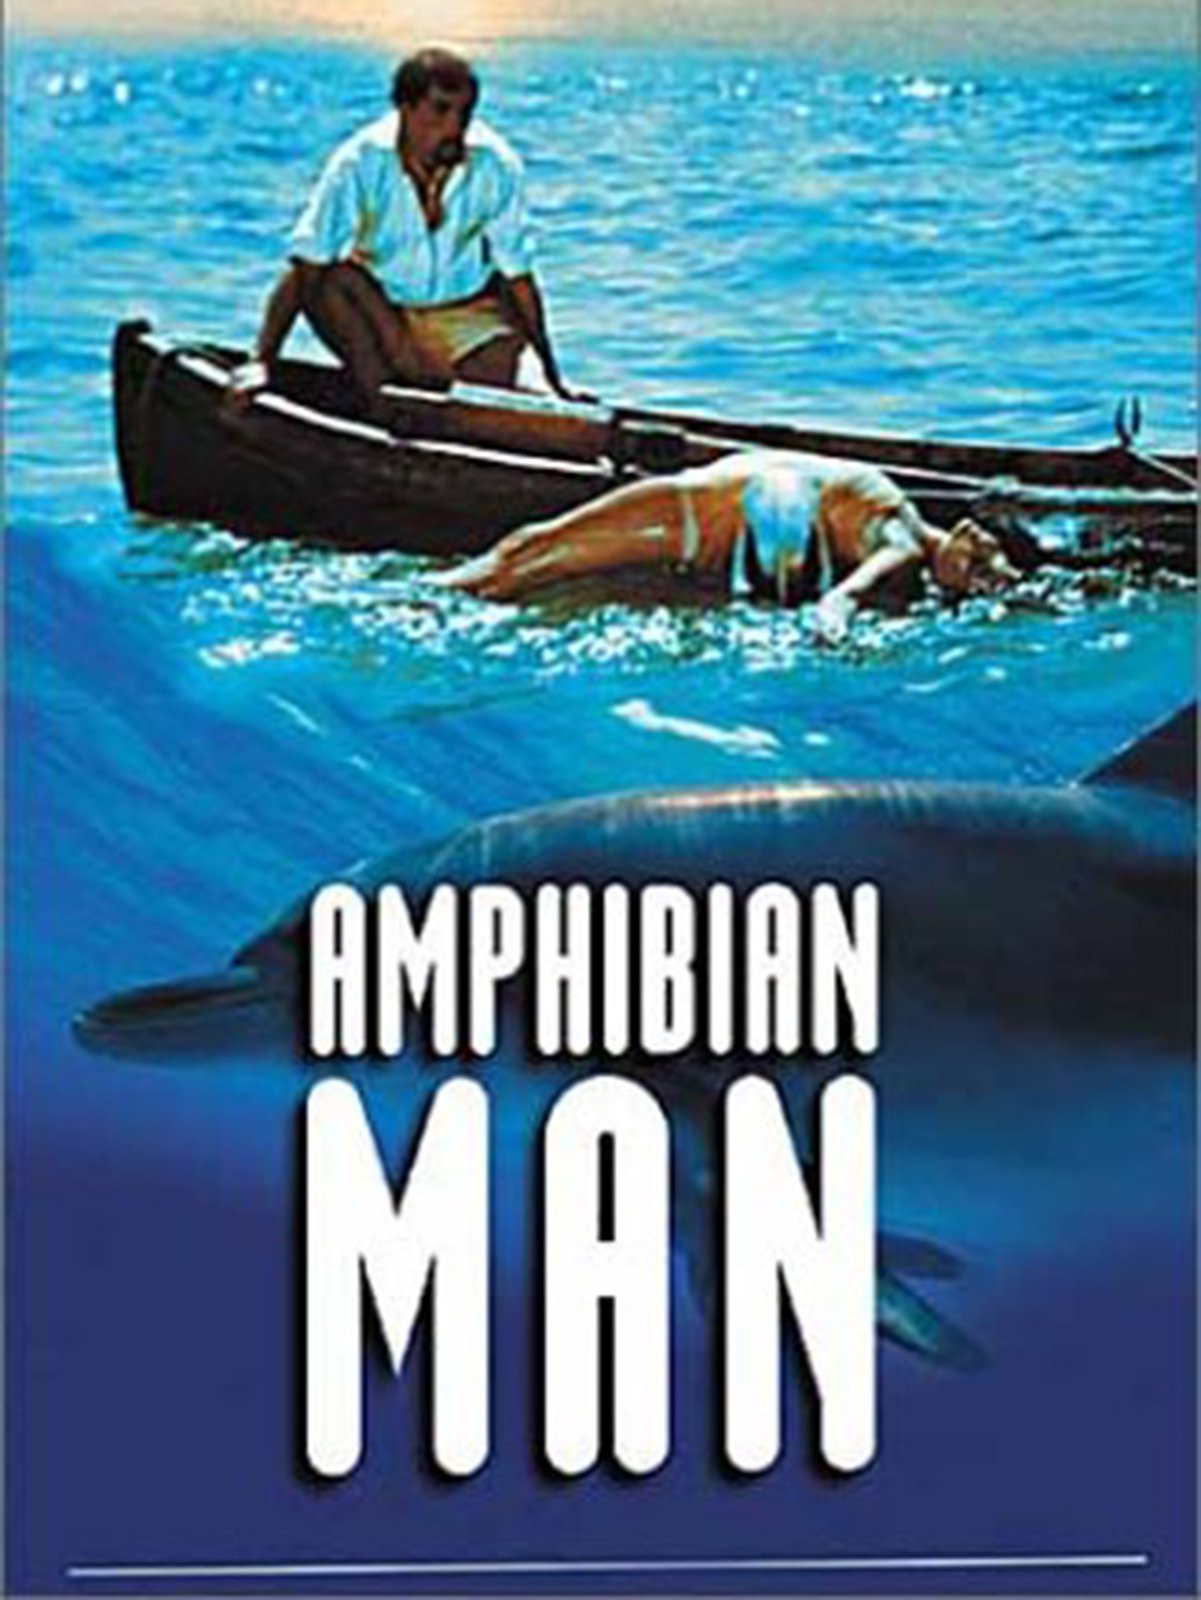 Novel time: reviews of the book Man-amphibian 81